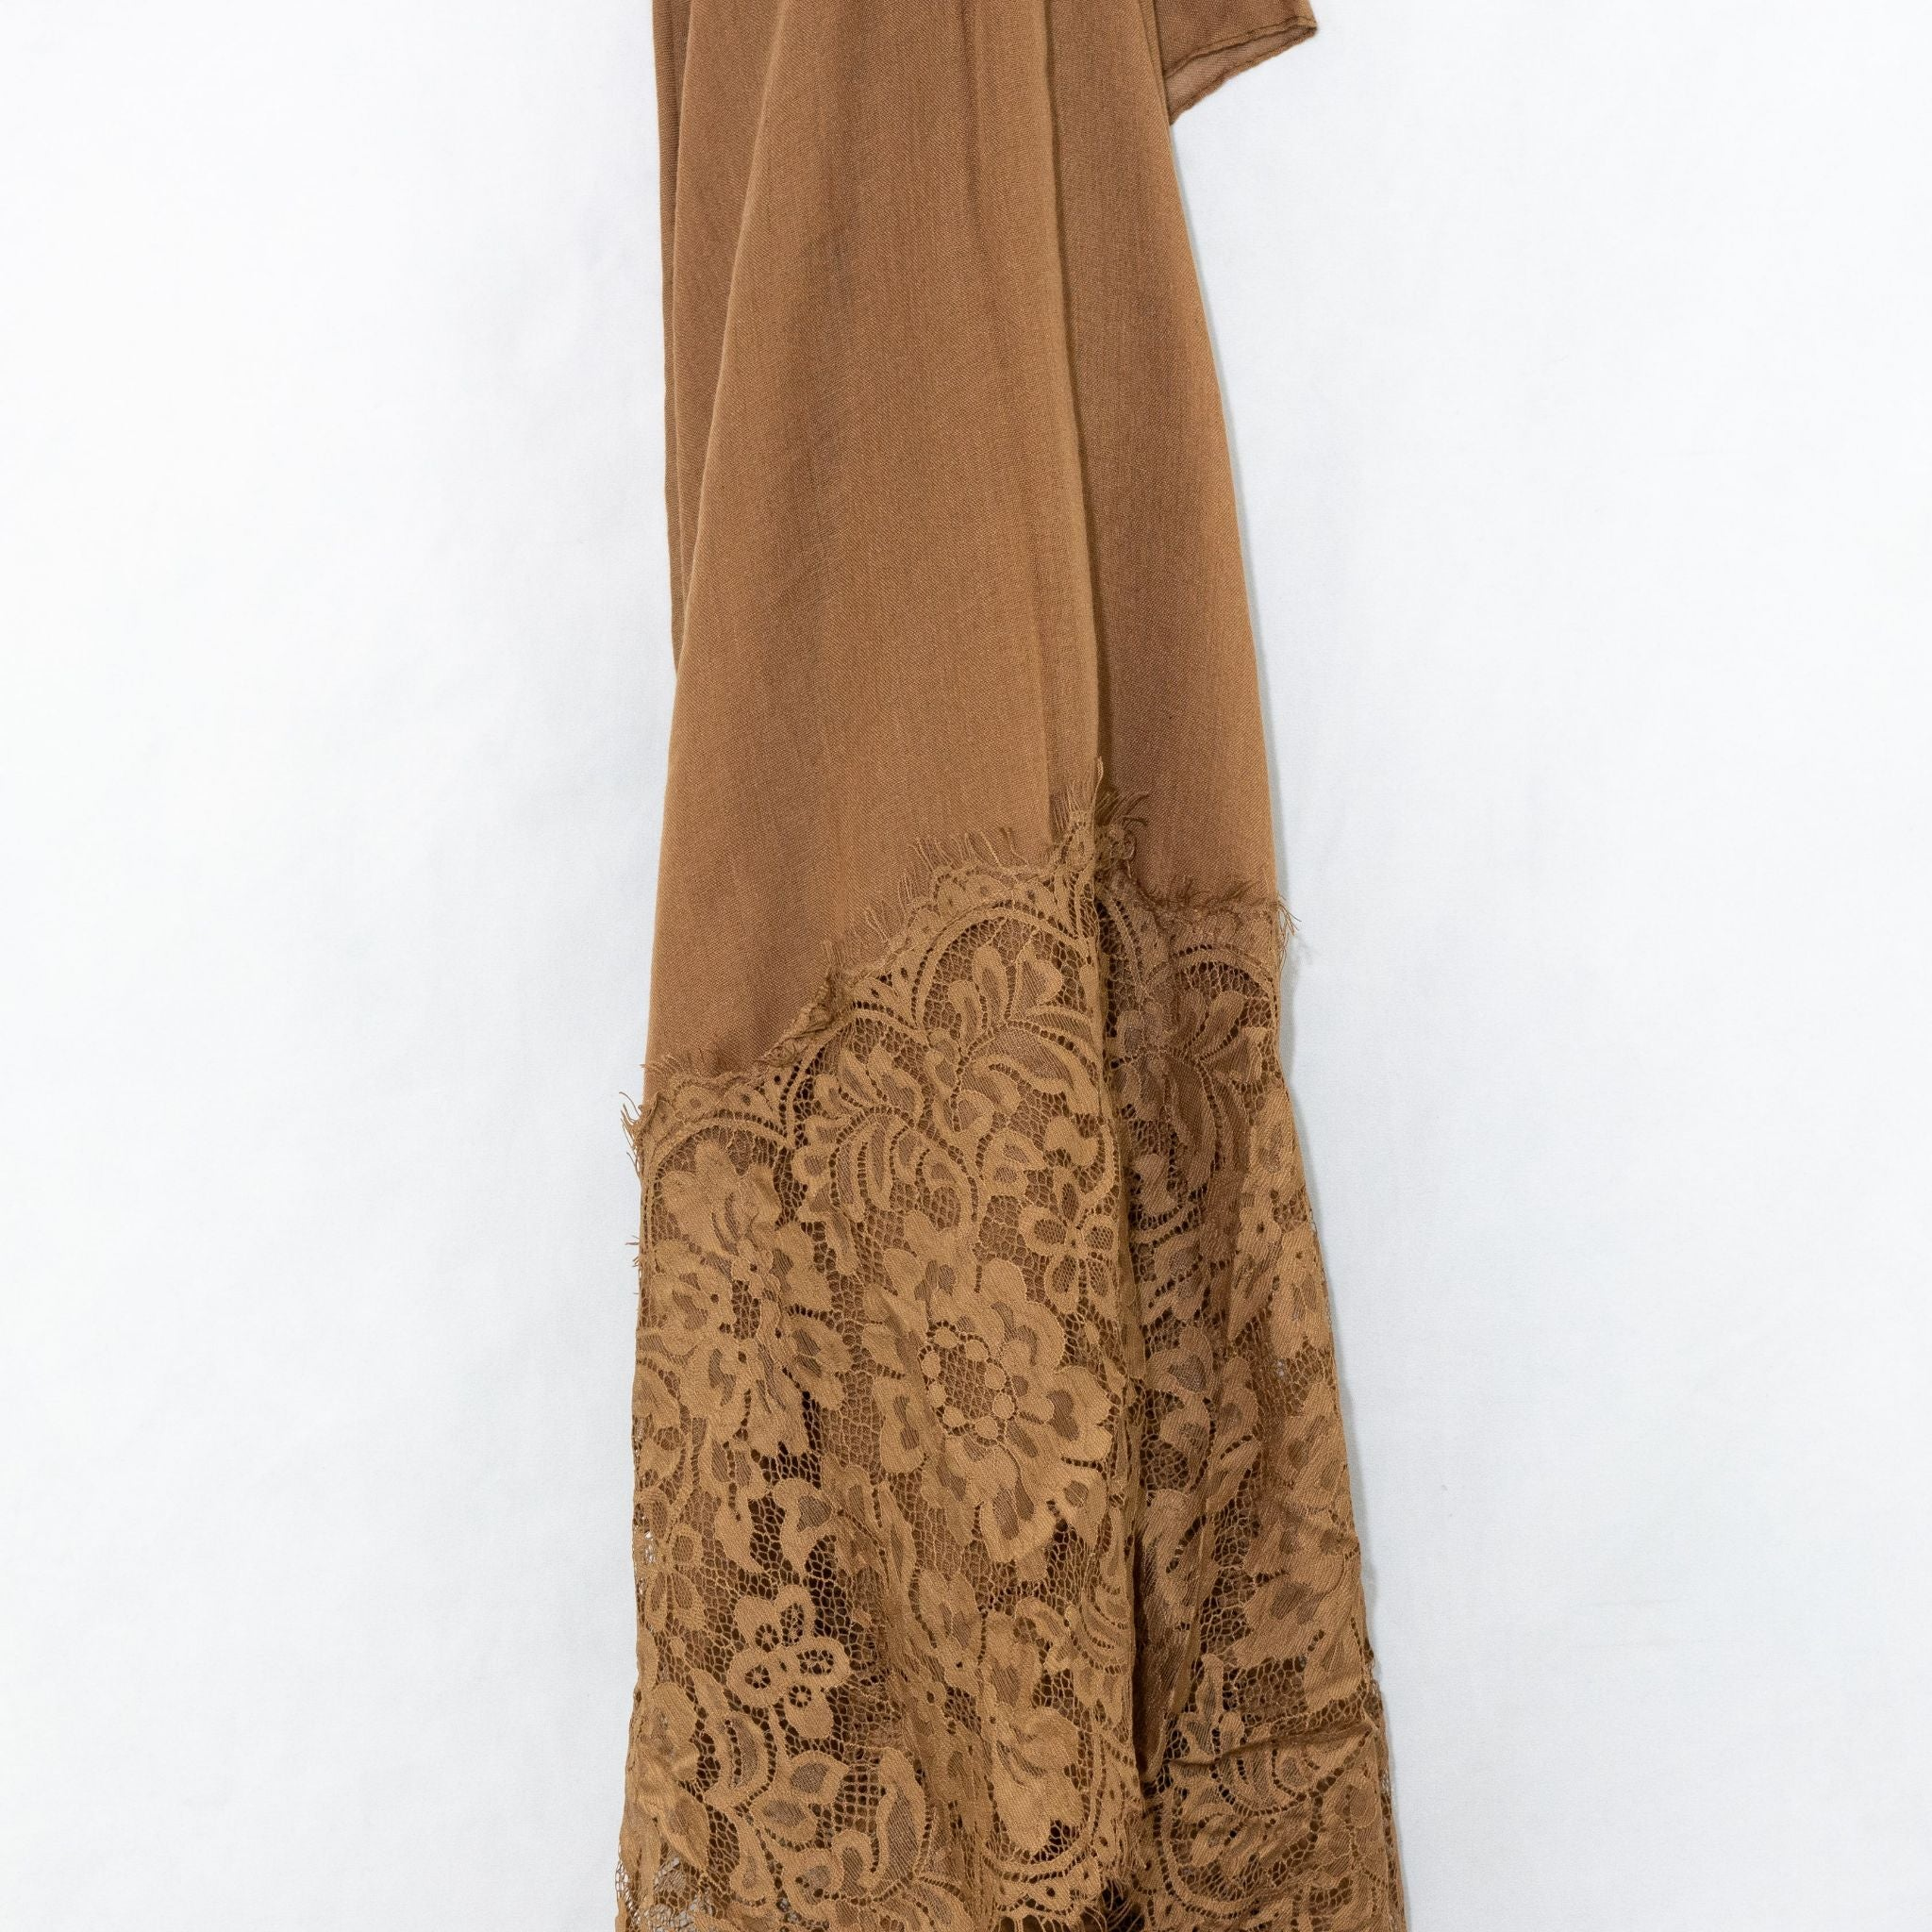 Cinnamon Brown Premium Lace Cotton Viscose Hjiab